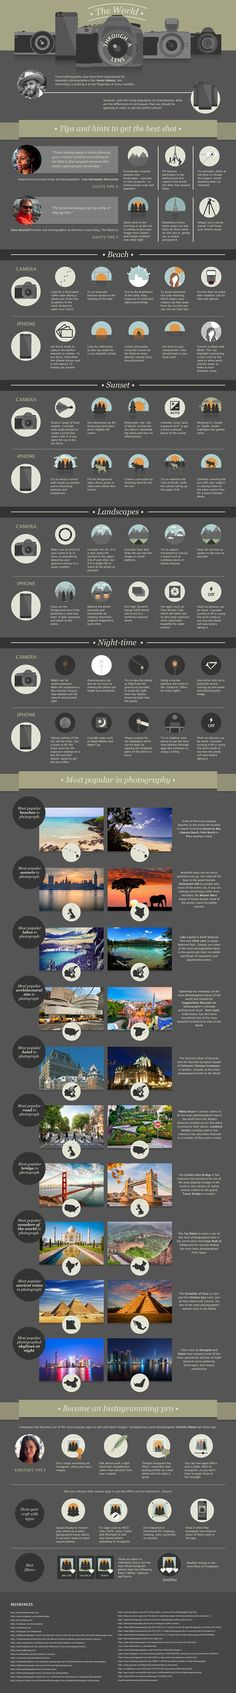 Fairmont Hotels infographic guide to shooting holiday photos plus how to Instagram like a pro | Daily Mail Onlinehttp://www.dailymail.co.uk/travel/travel_news/article-2931290/Experts-reveal-ultimate-travel-photography-tips.html